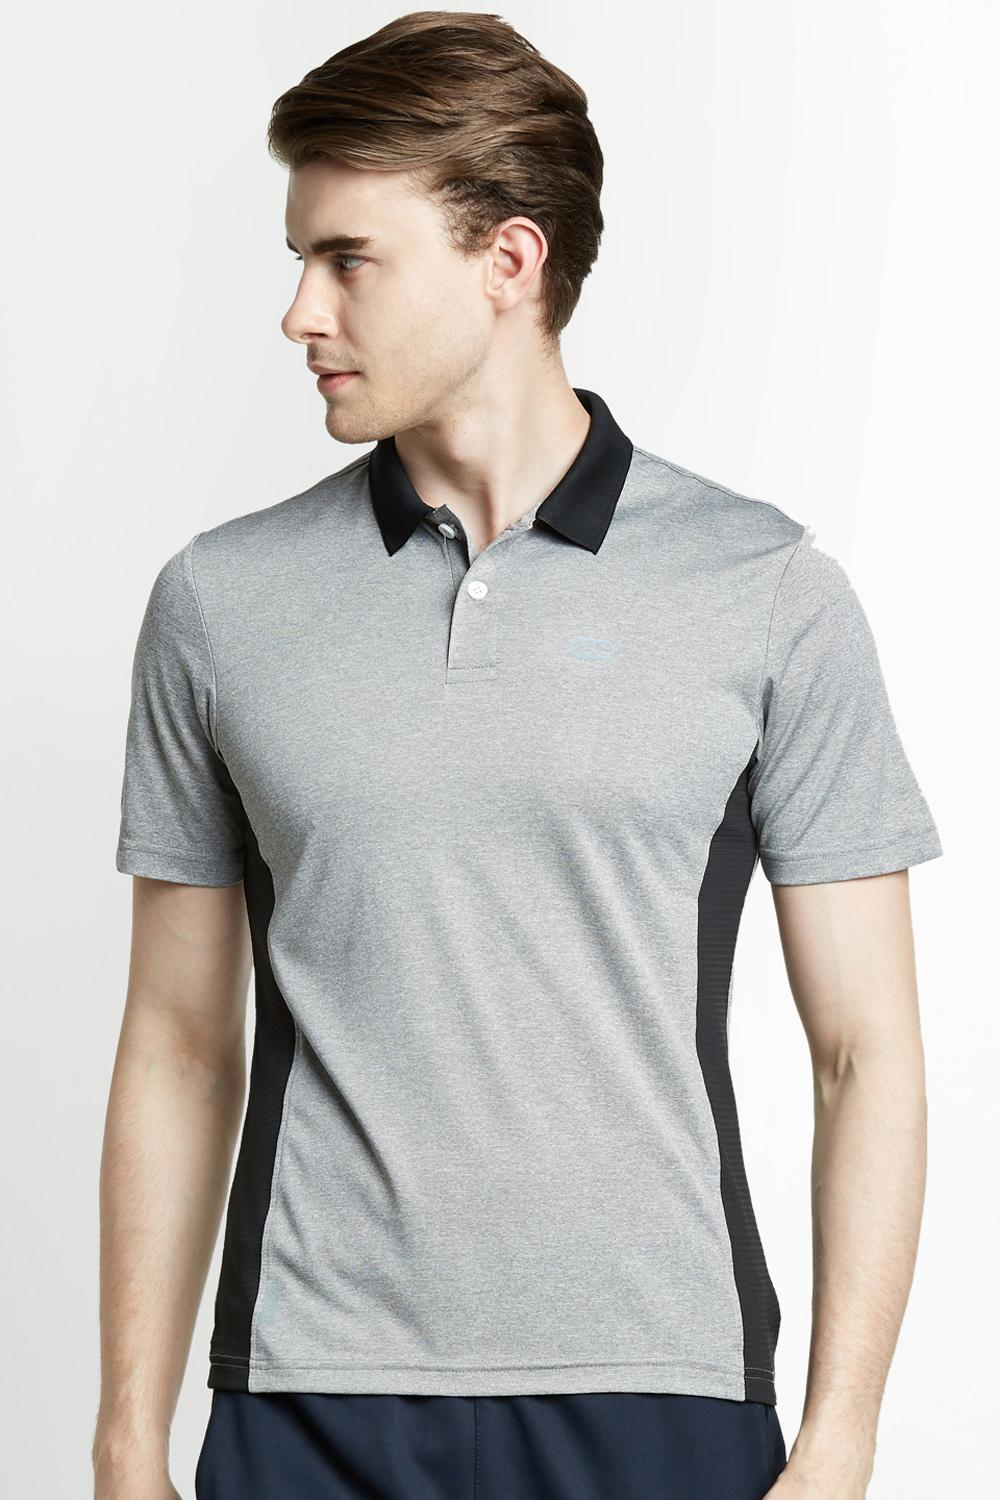 092ec36a Buy T Shirts for Men Online with Best Price in India | Pantaloons